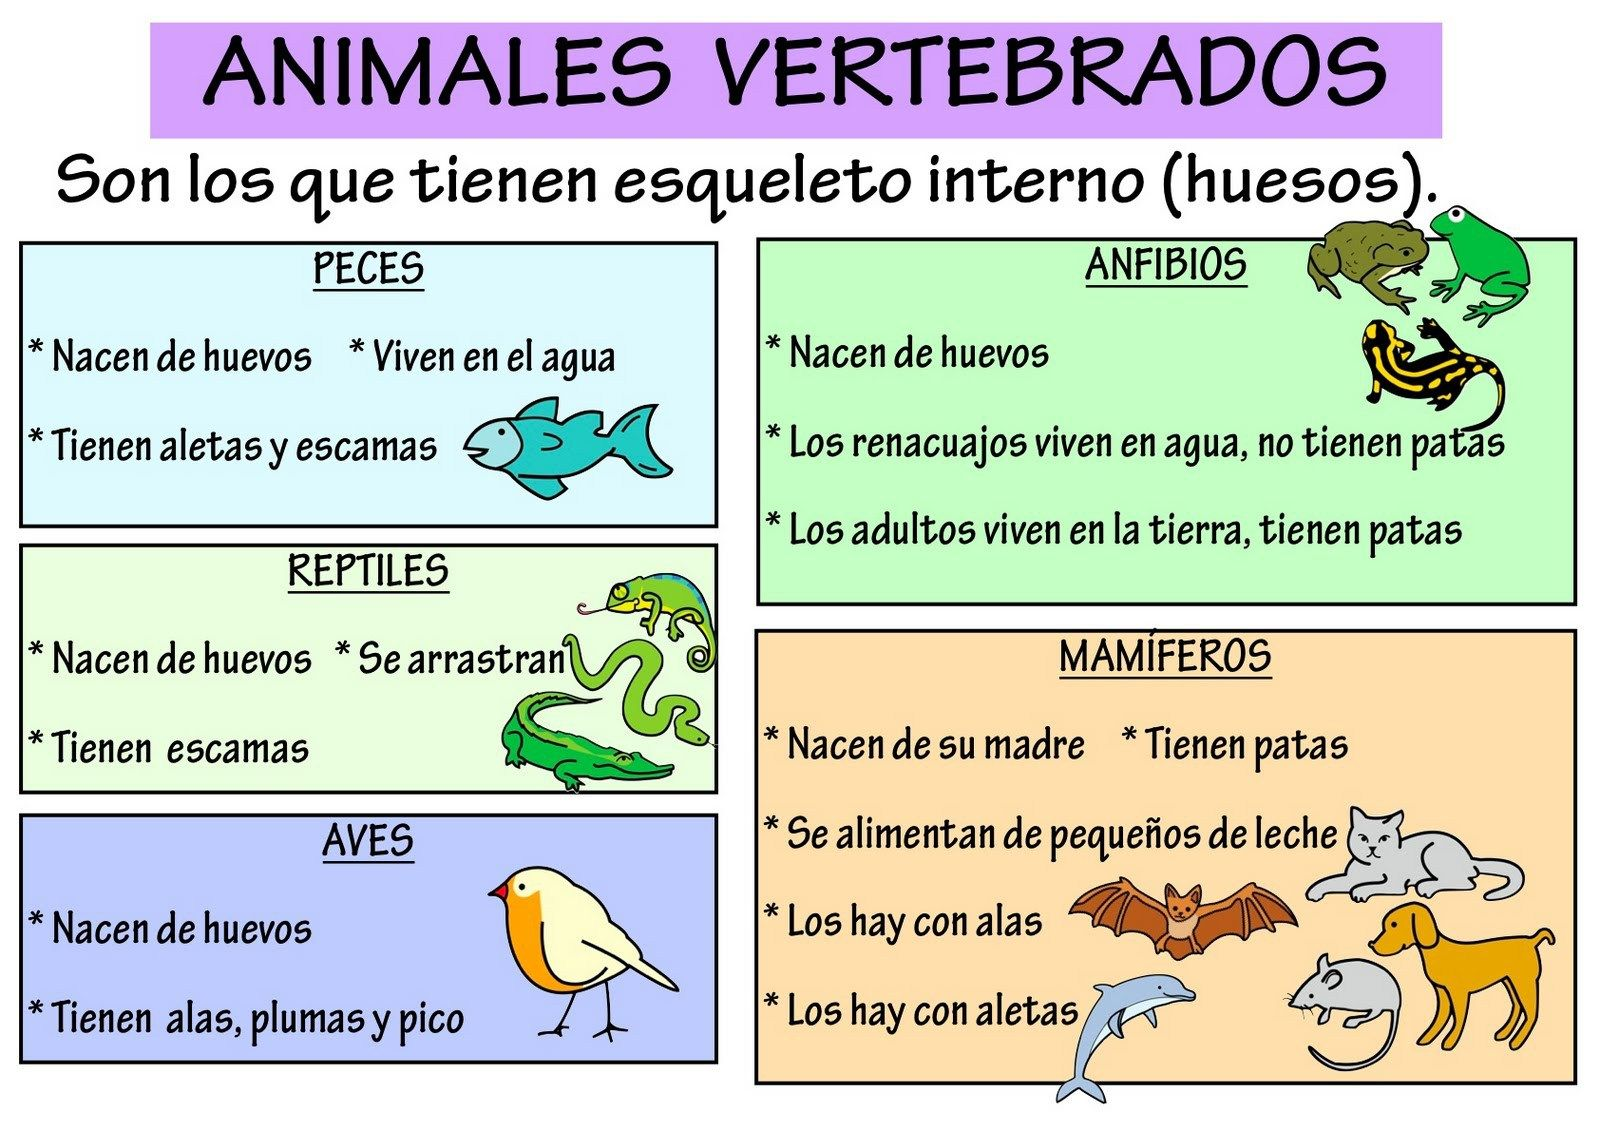 Ms de 25 ideas increbles sobre Imagenes de animales vertebrados